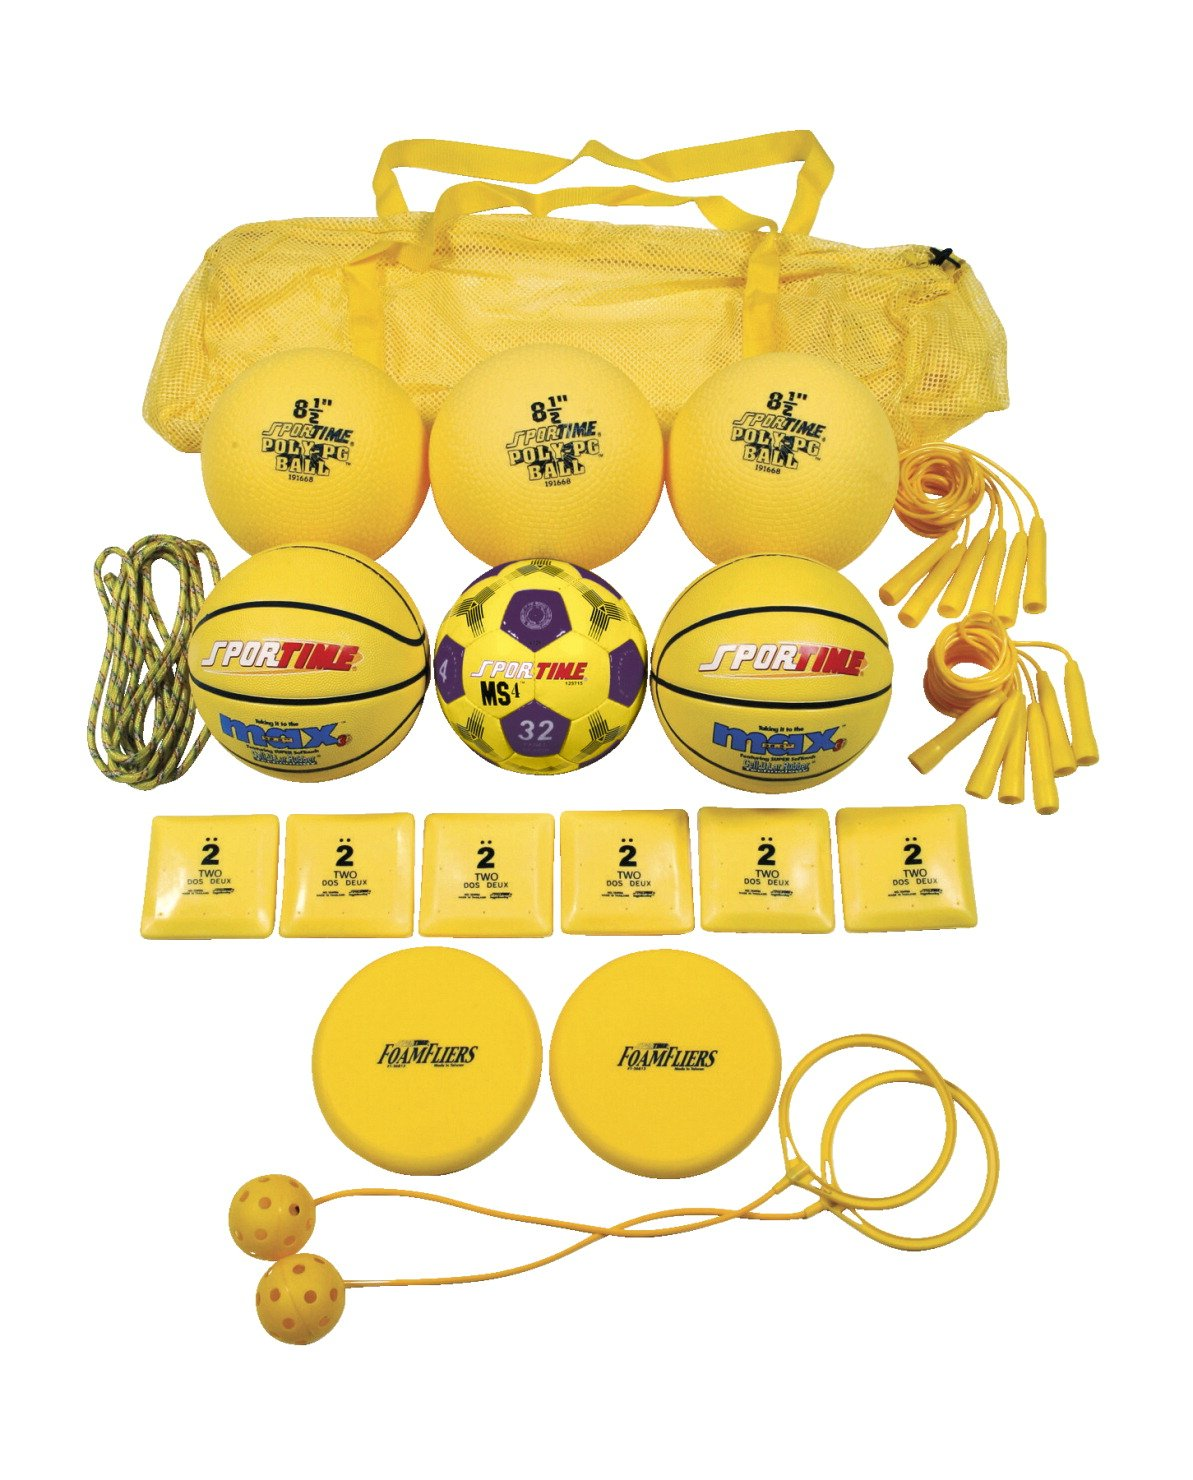 Sportime Recess Pack, Yellow, Grade 1, Set of 19-1281819 by Sportime